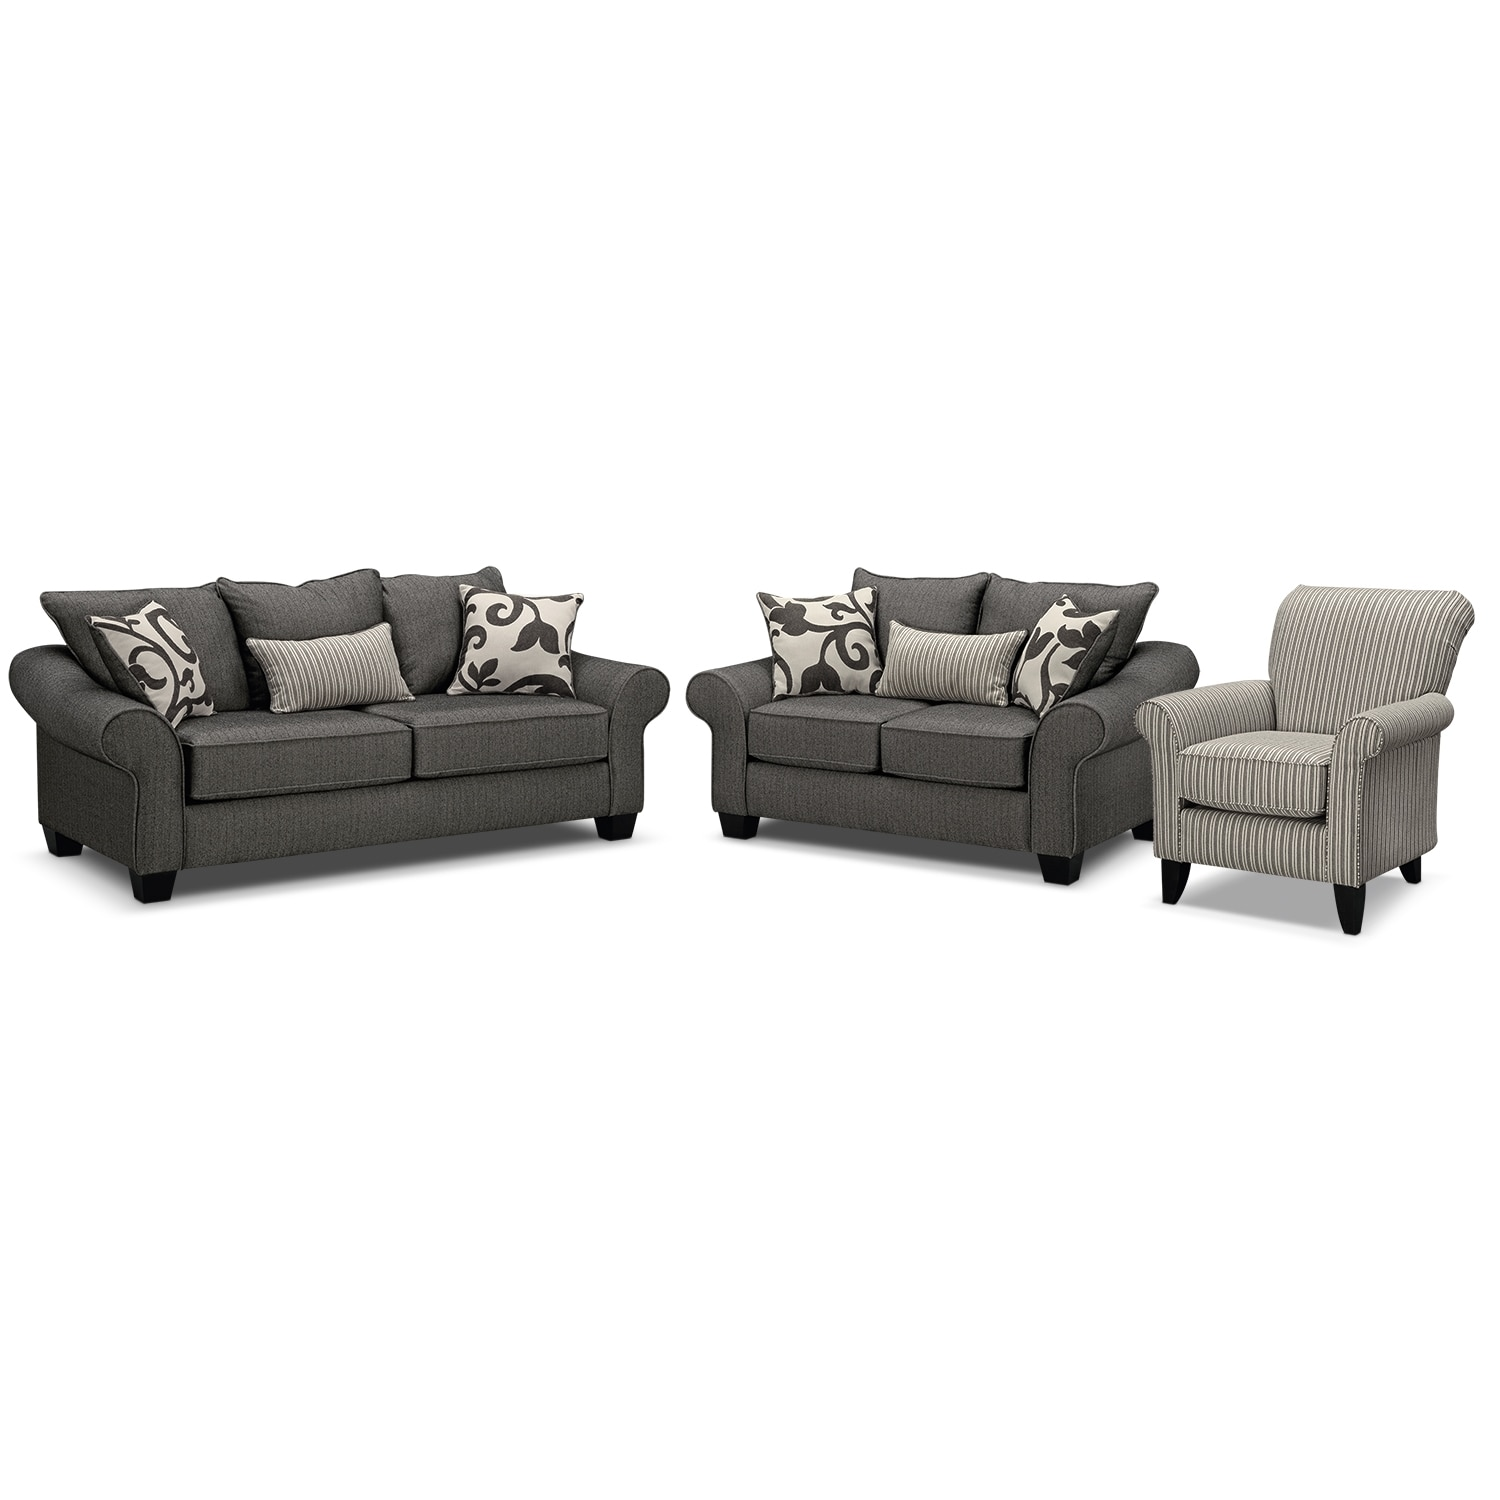 Colette Sofa Loveseat And Accent Chair Set Gray American  ~ Sofa Loveseat And Chair Sets